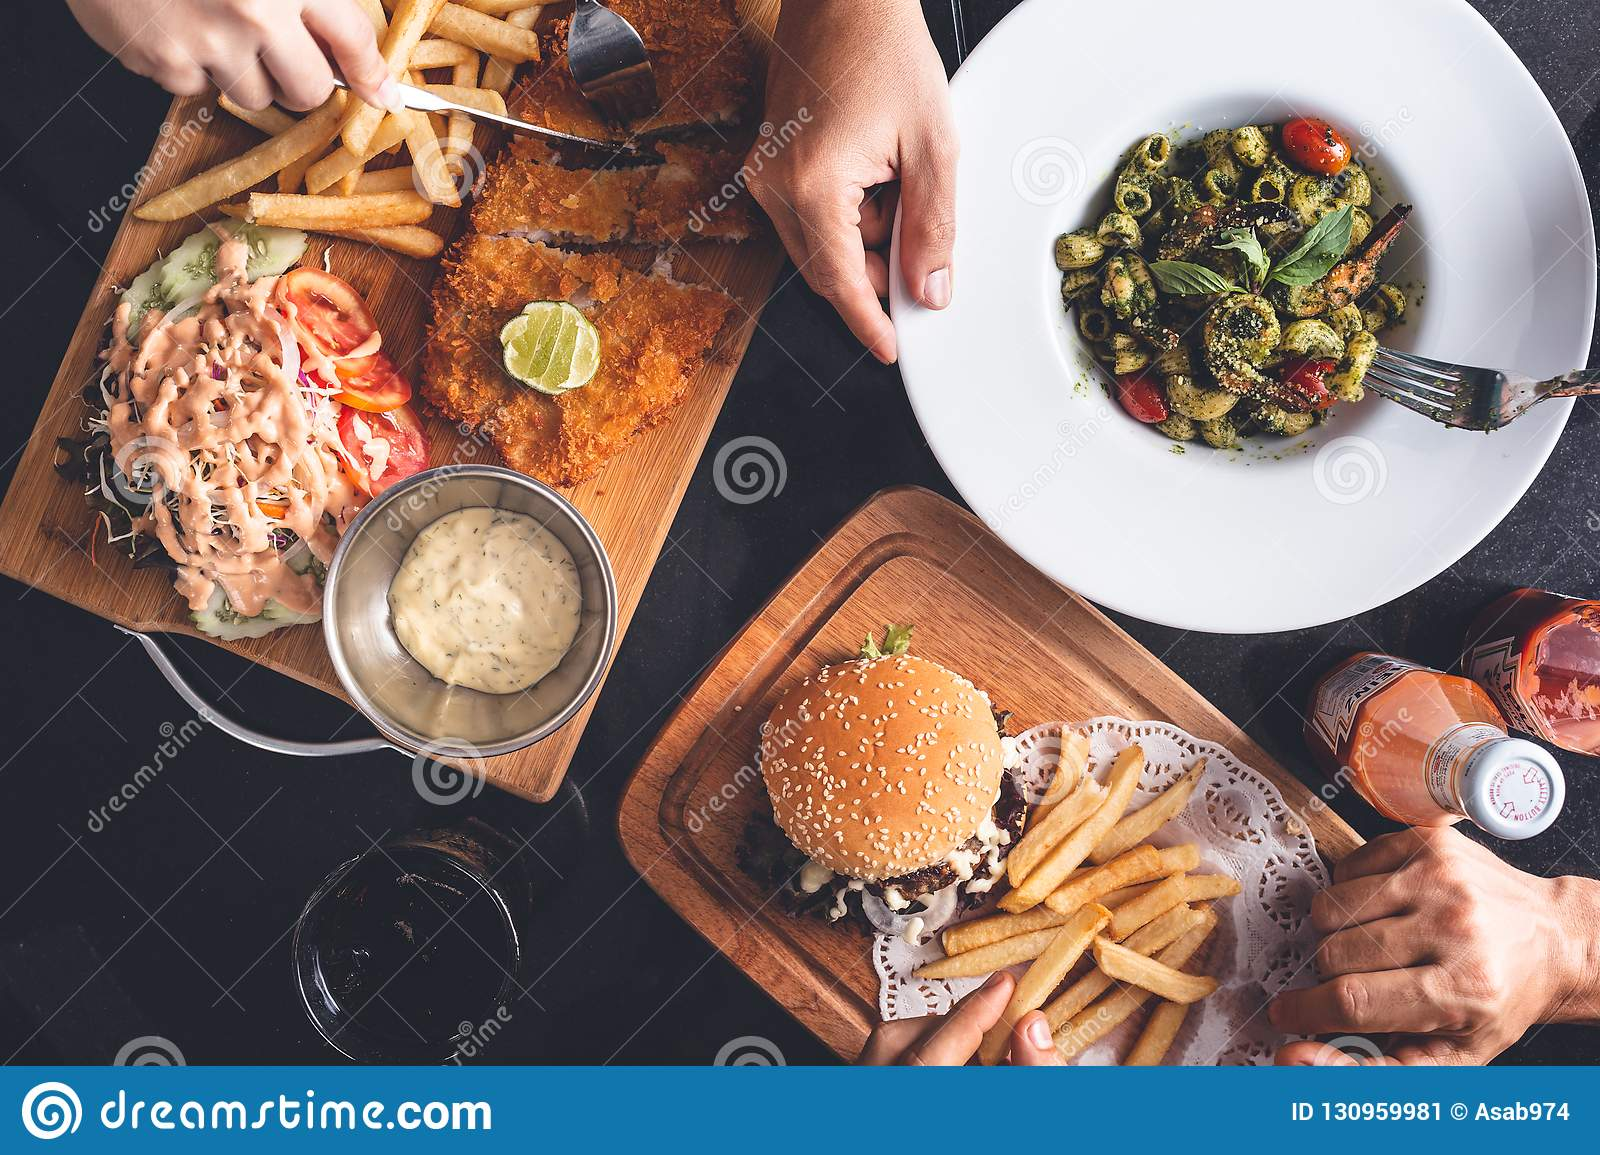 Fish and Chips, Fries and Burger, Pasta Dish on Restaurant Table